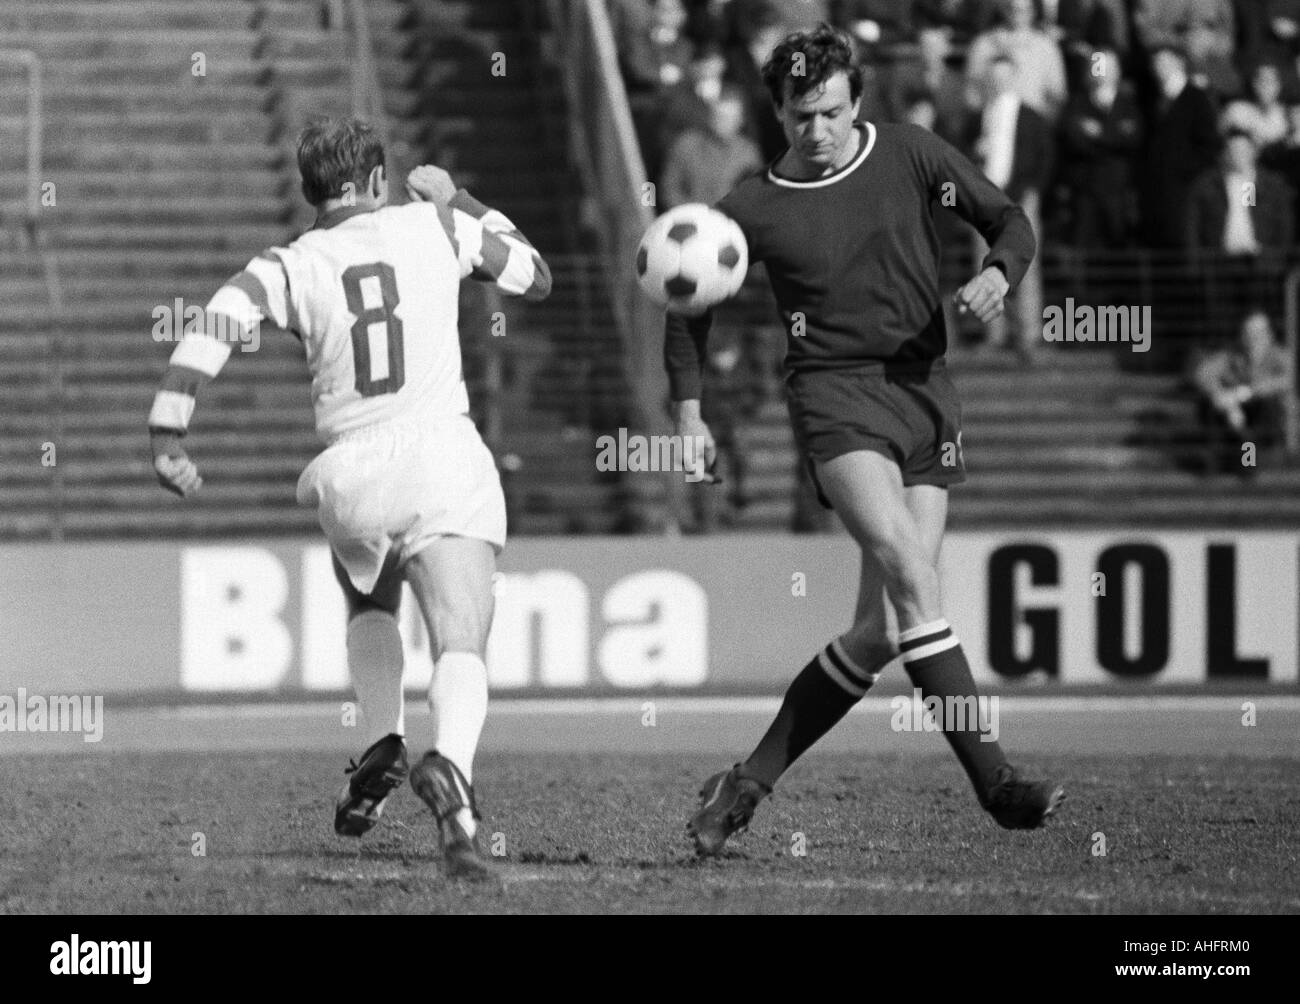 football, Bundesliga, 1967/1968, Wedau Stadium in Duisburg, MSV Duisburg versus 1. FC Kaiserslautern 7:0, scene of the match, duel between Horst Gecks (Duisburg) left and Otto Geisert (Kaiserslautern) - Stock Image